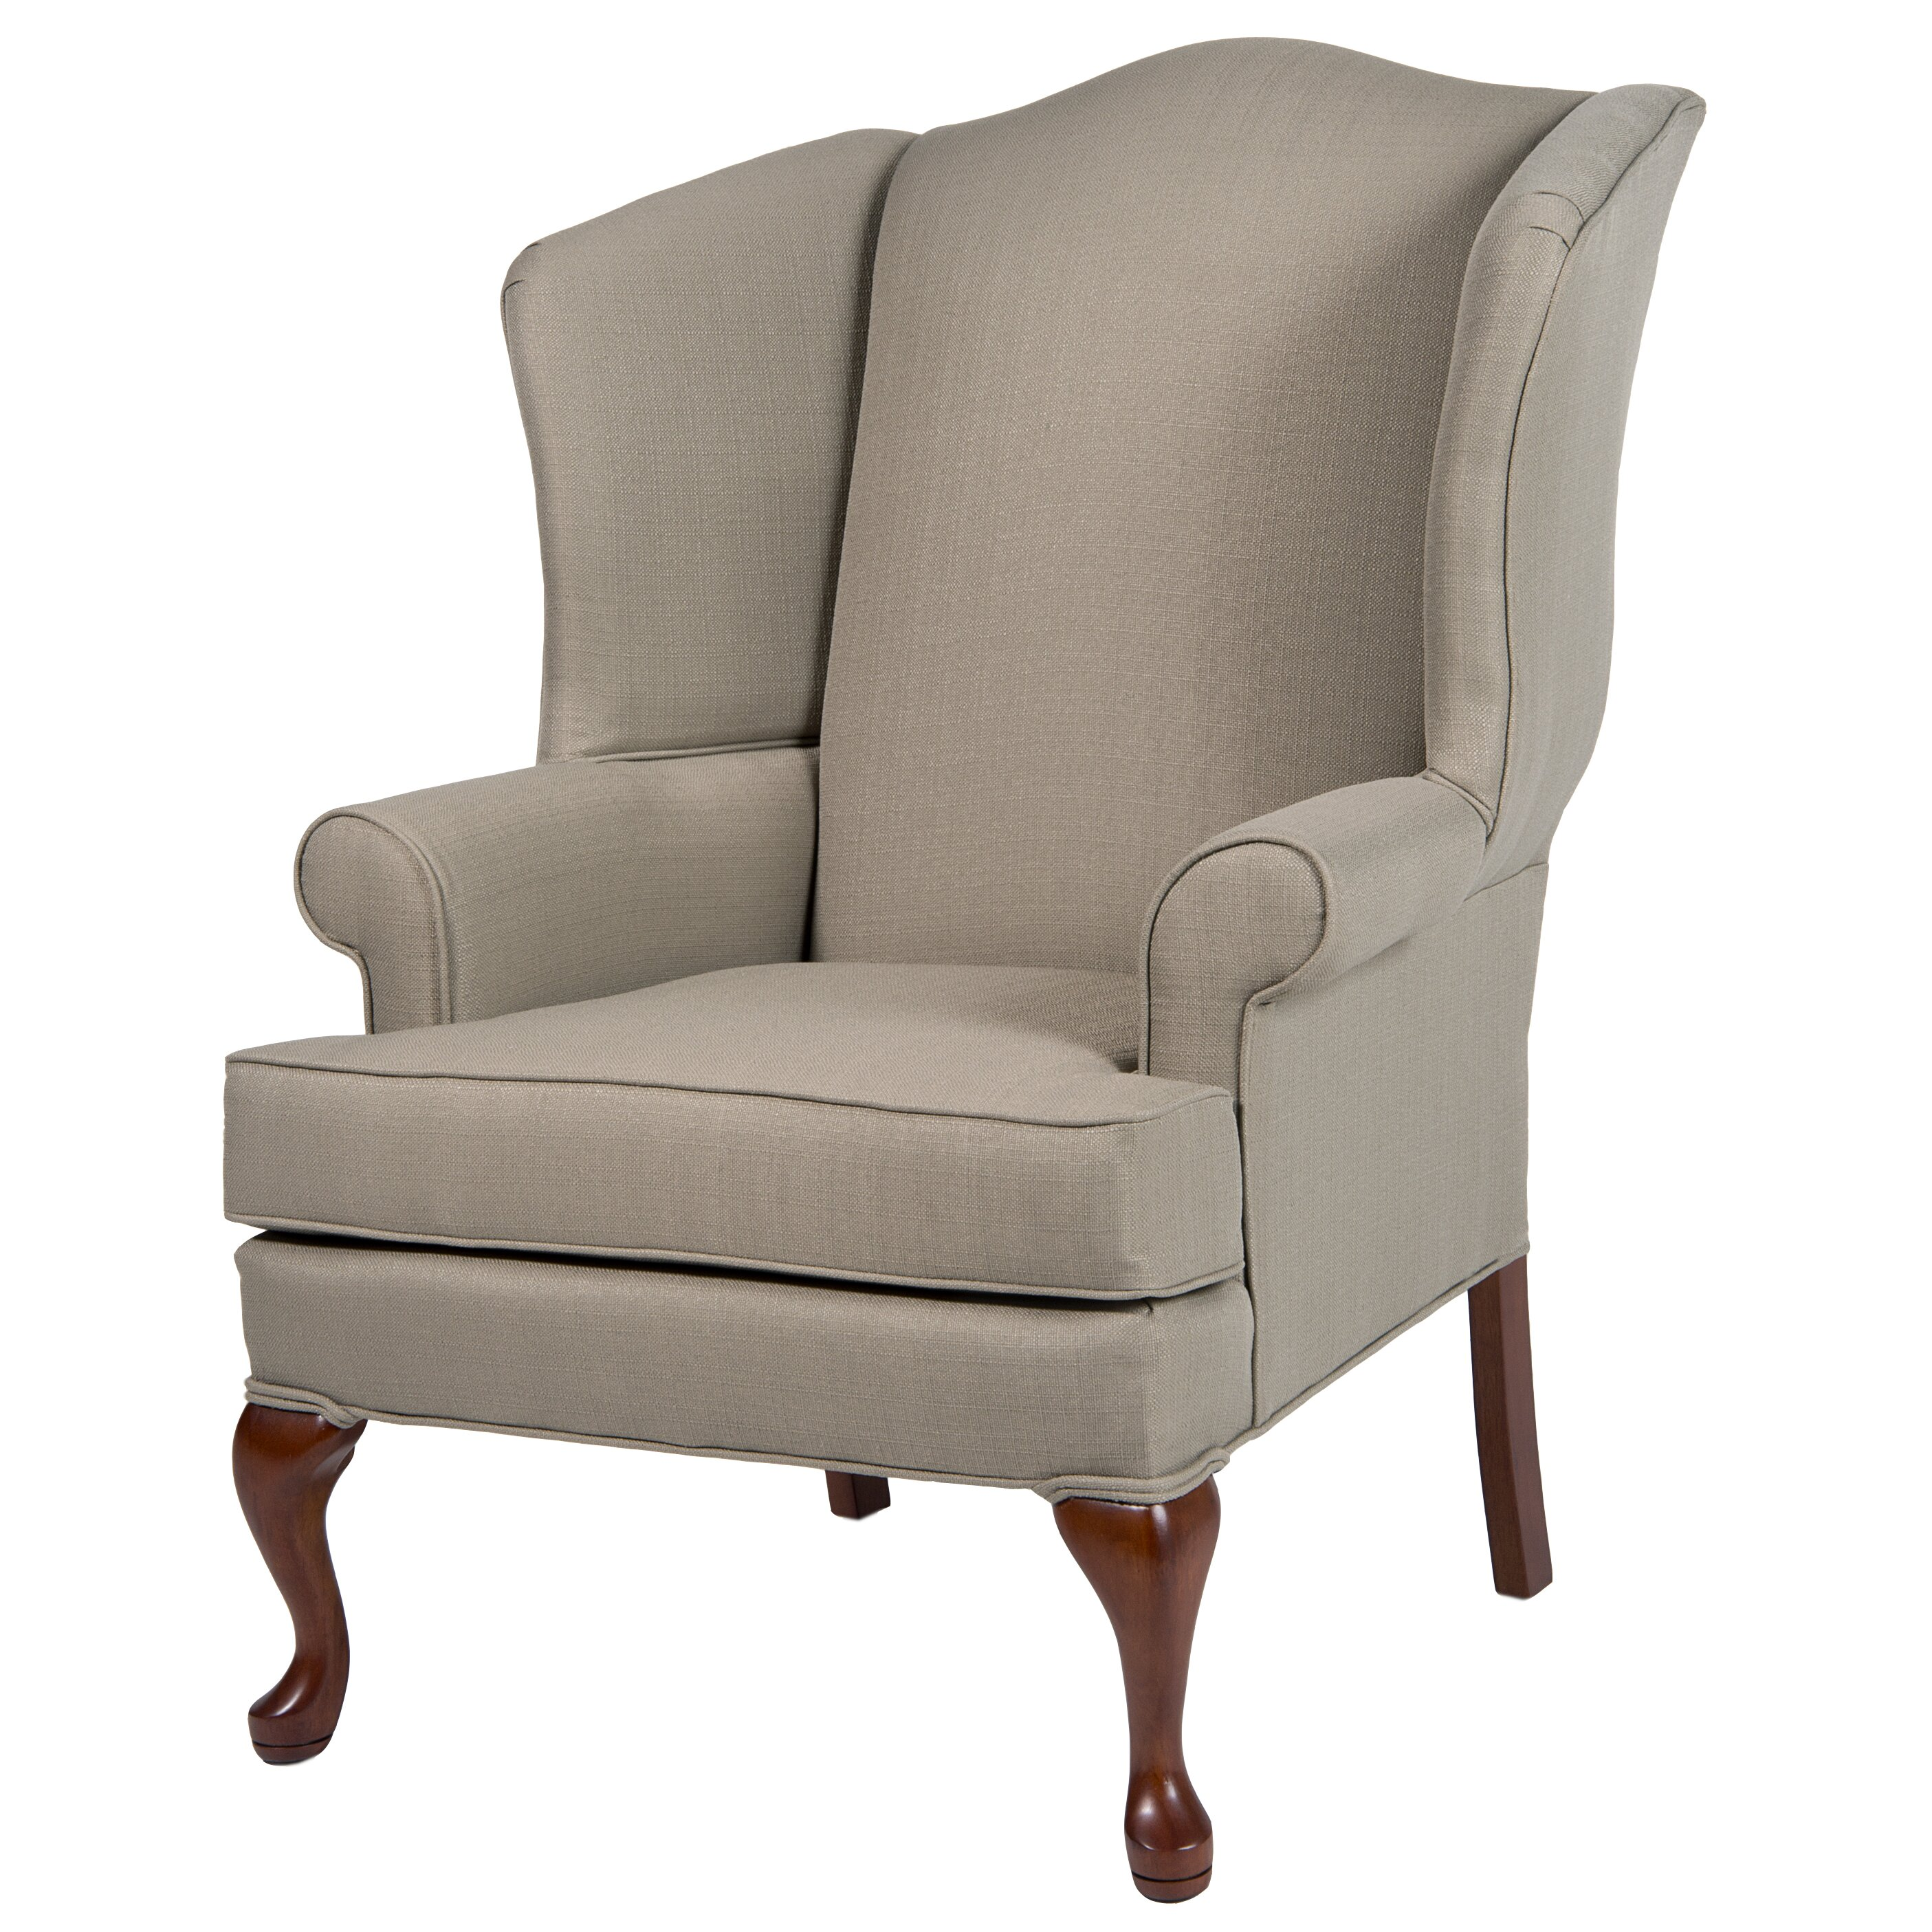 Wing chair with ottoman - Erin Wing Back Chair